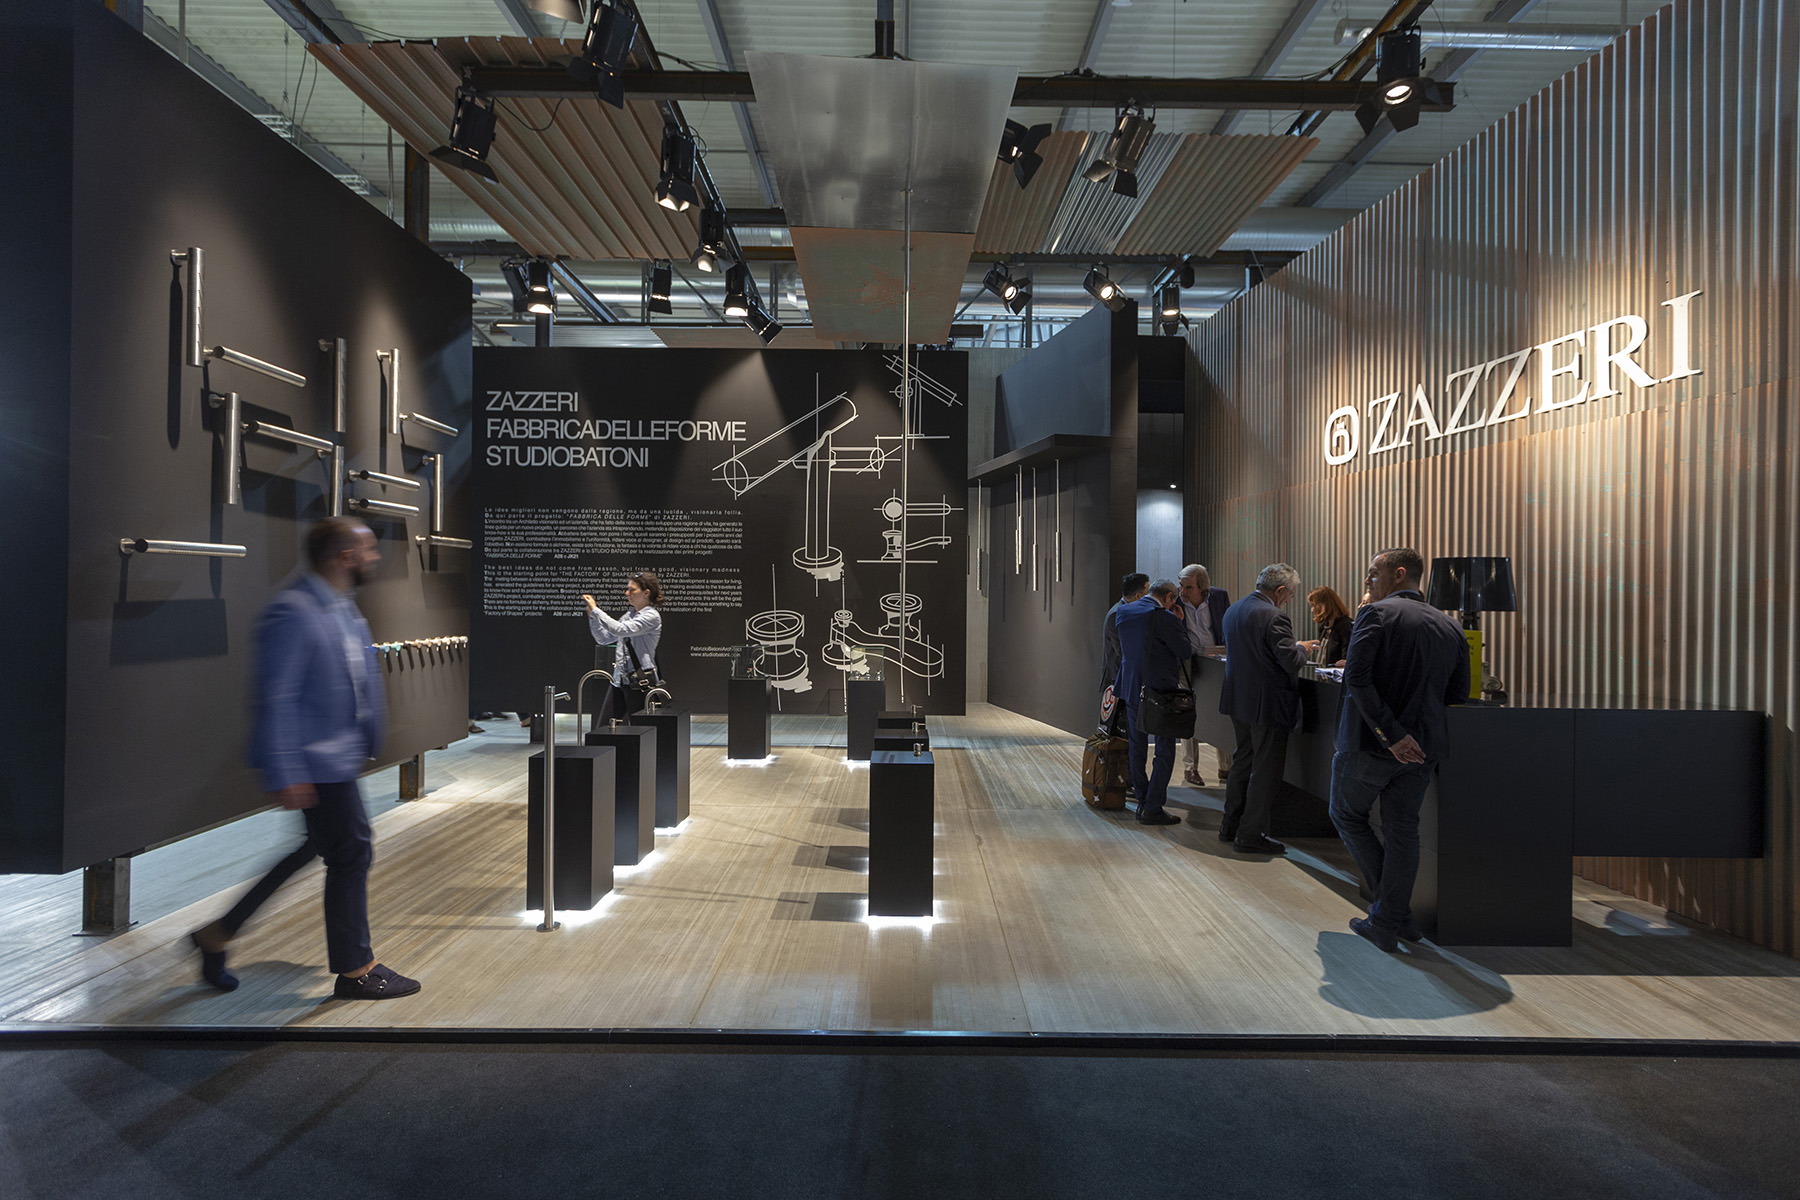 Our experience at the Salone del Mobile 2018